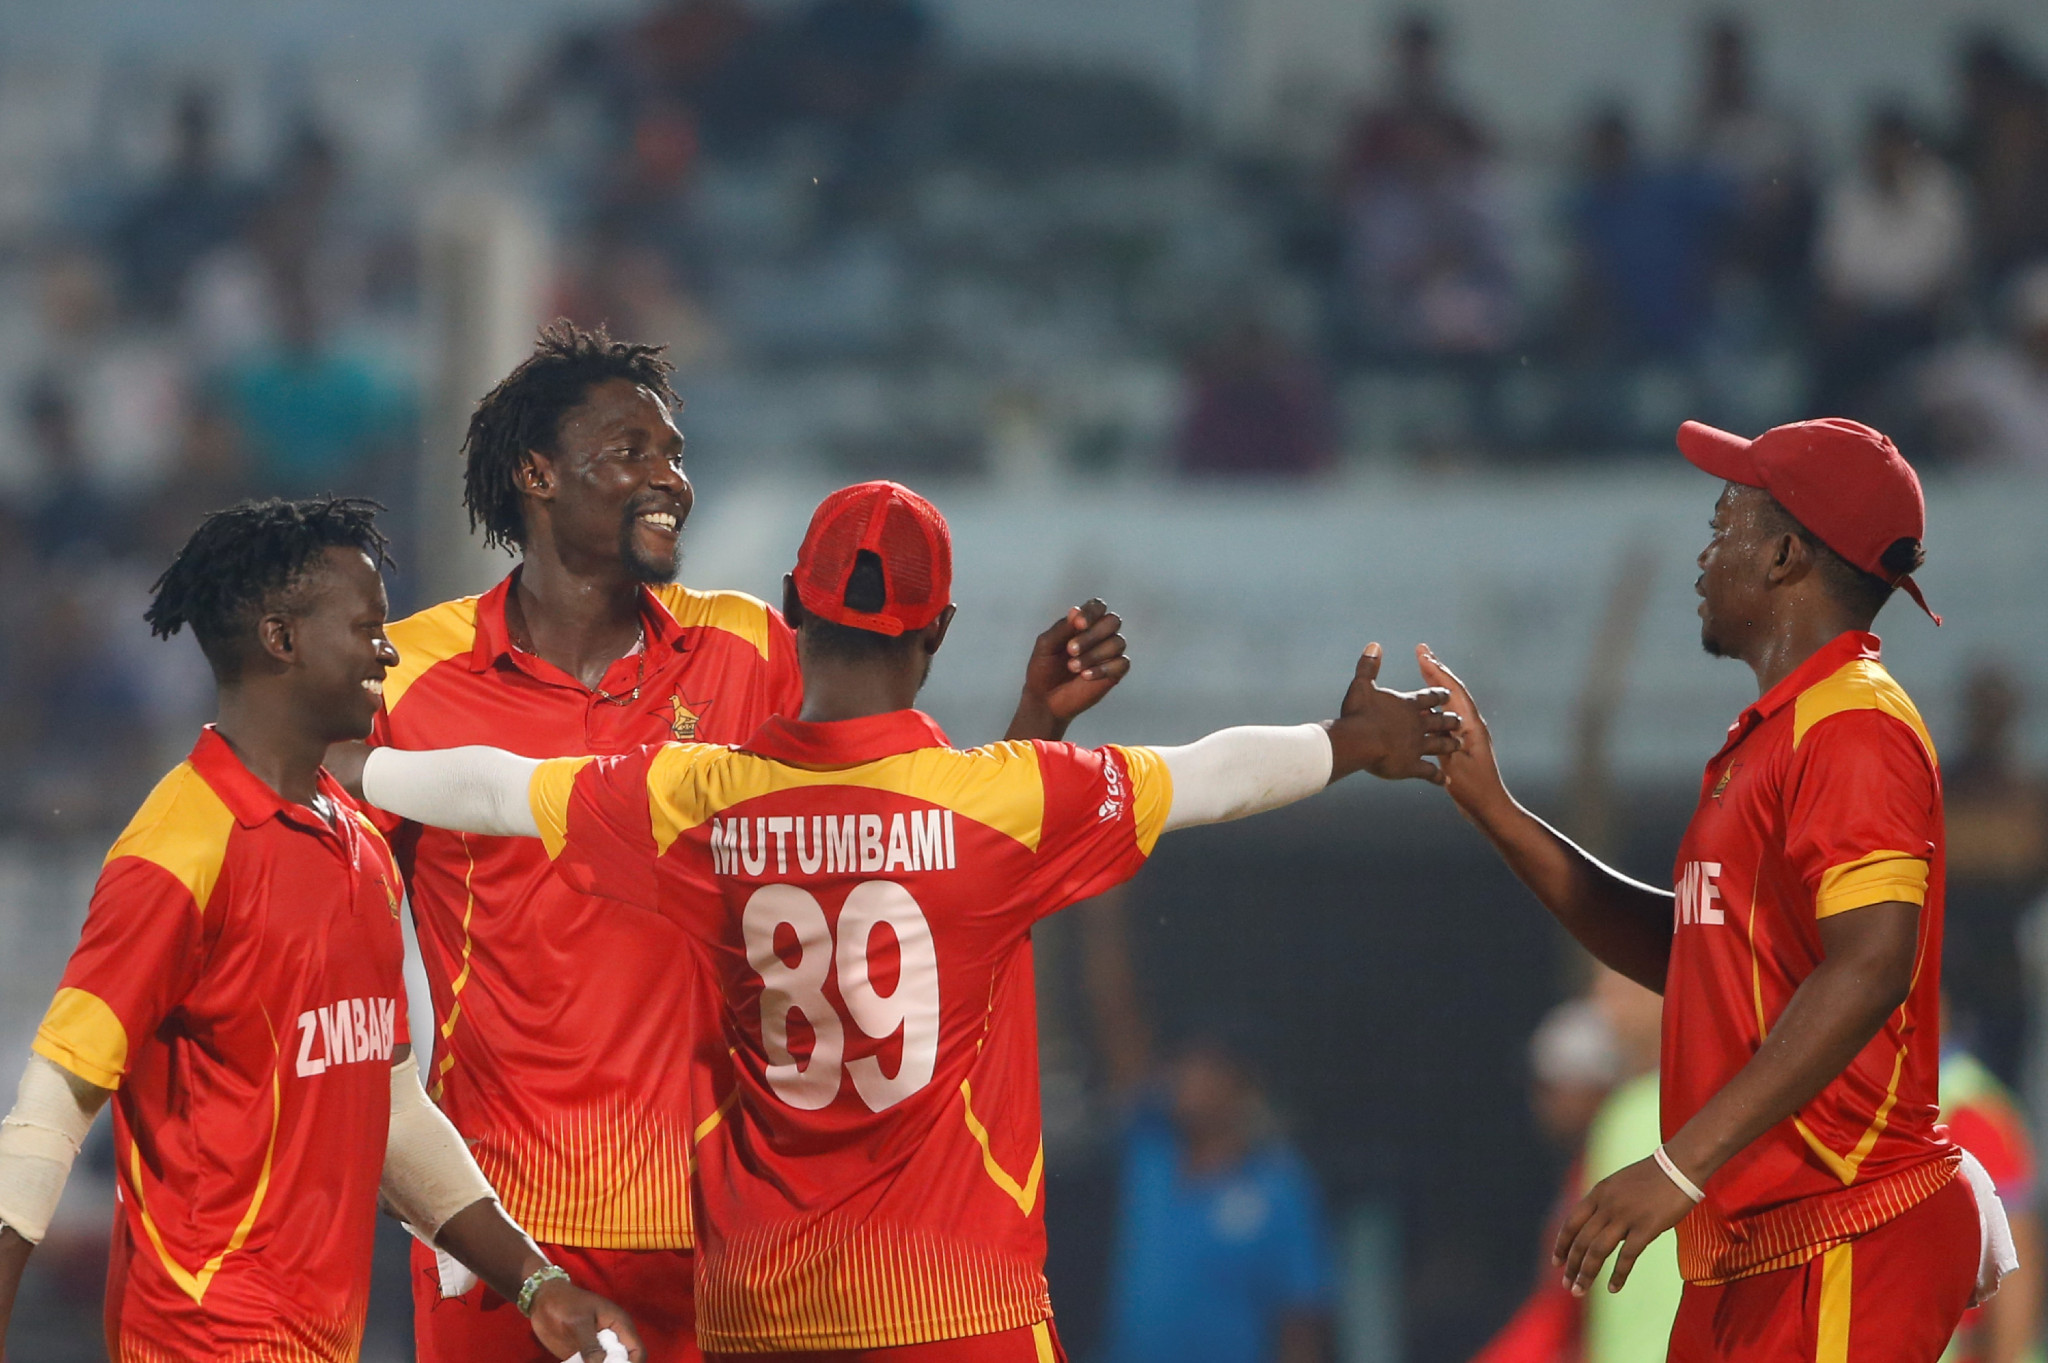 Zimbabwe's reinstatement came too late for the T20 World Cup qualifier ©Getty Images